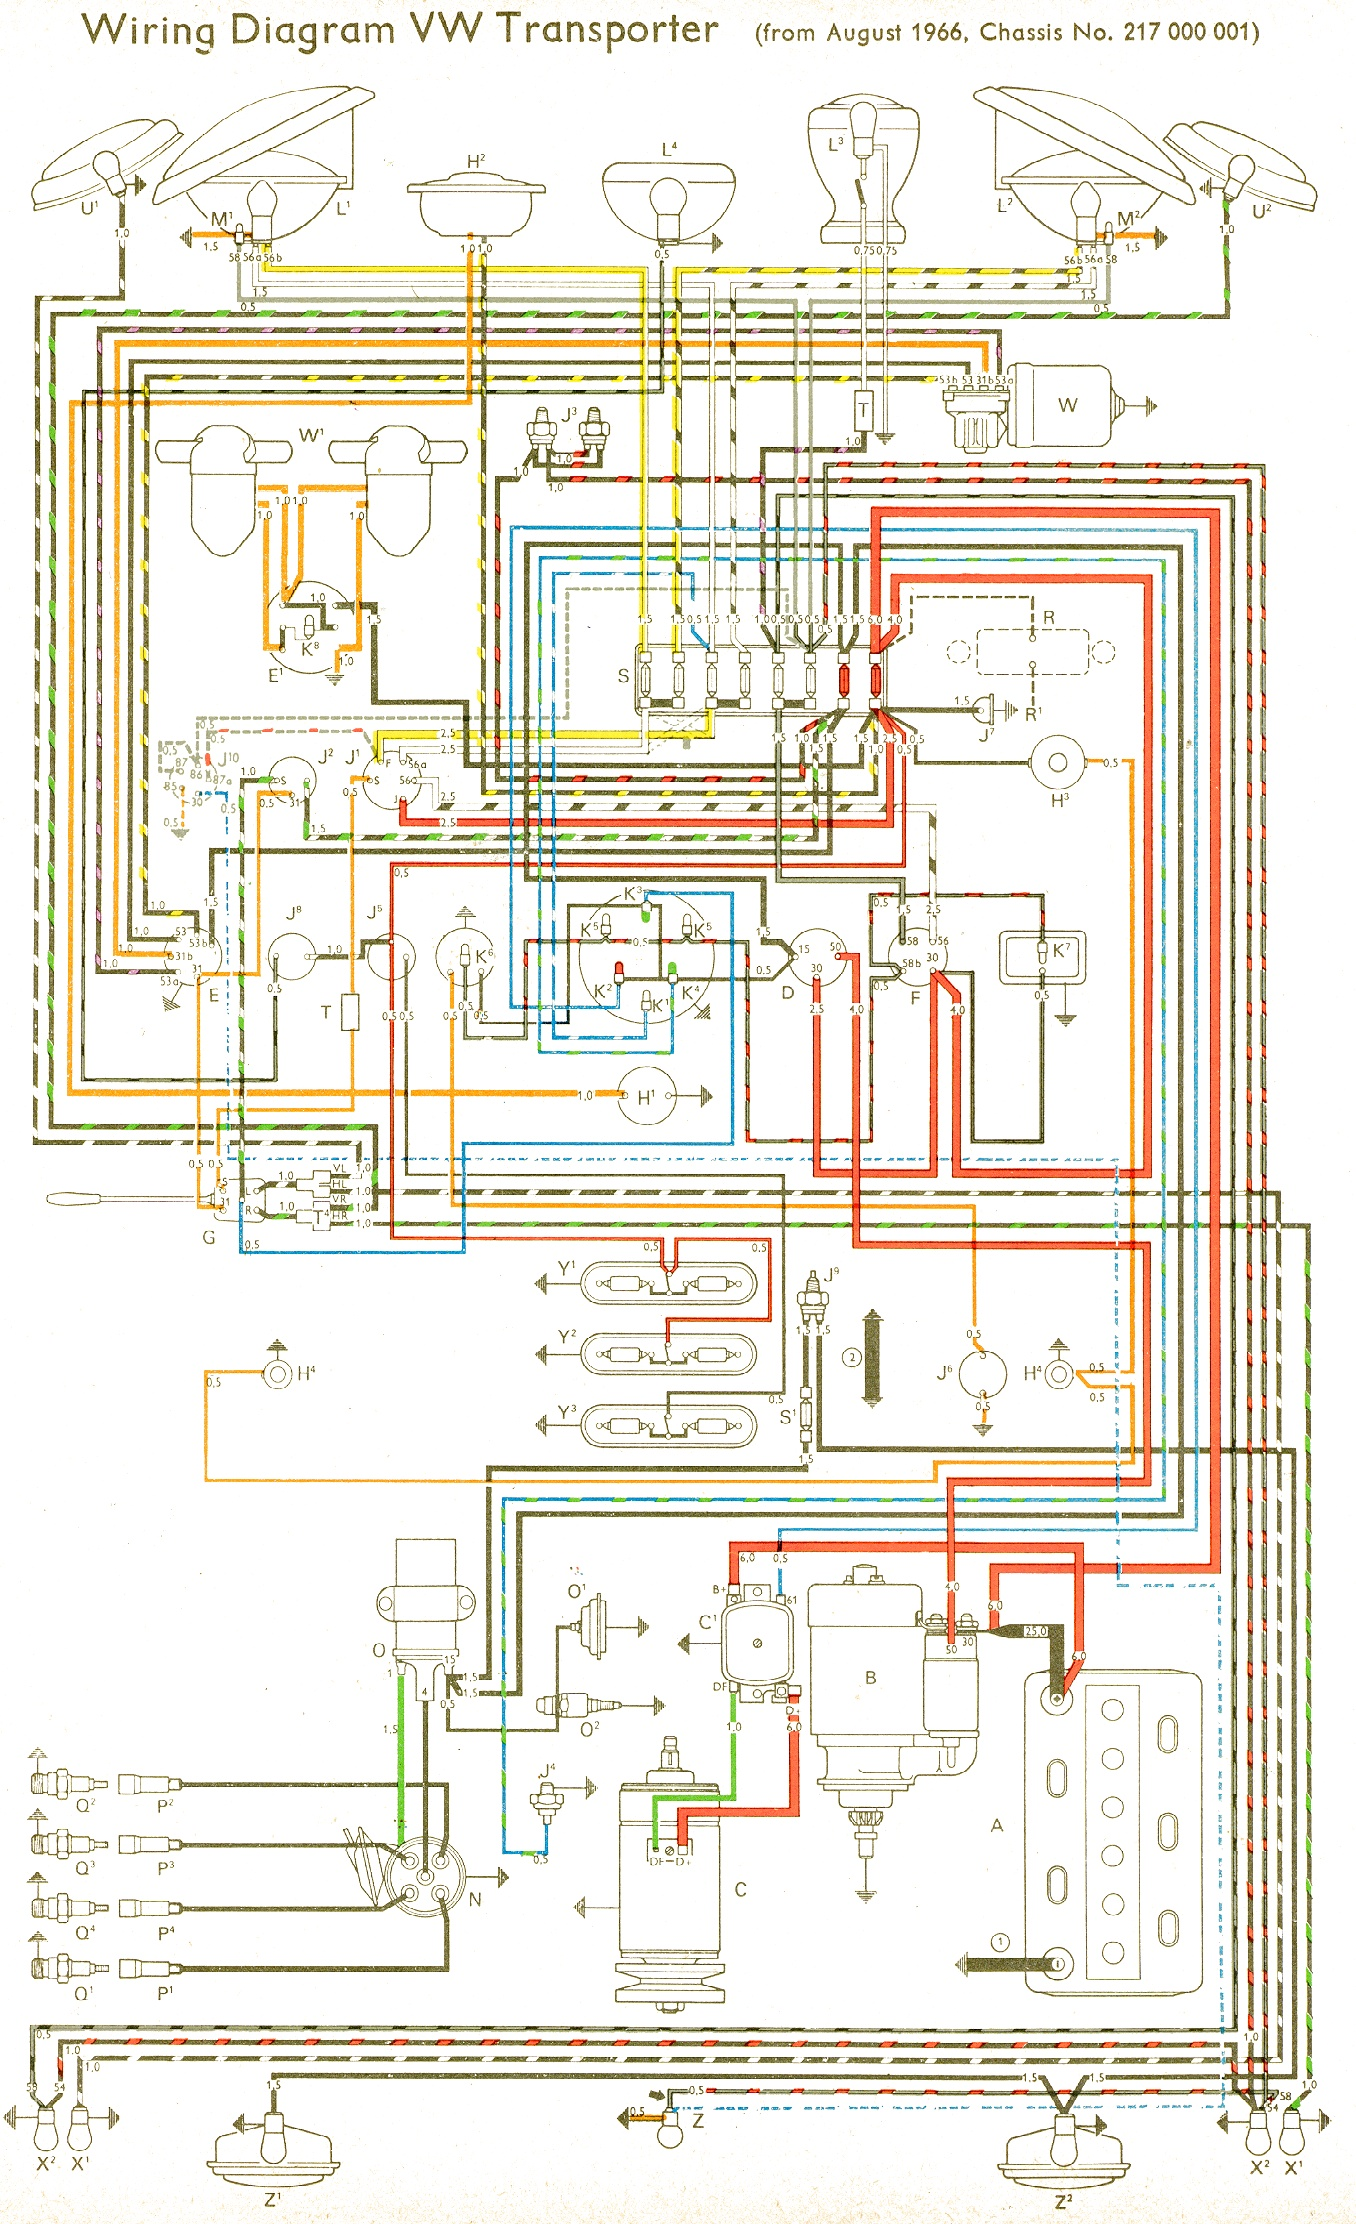 Vw Wire Diagram | Wiring Diagram  Bonneville Stereo Wiring Diagram on civic wiring diagram, impala wiring diagram, grand am wiring diagram, tr6 wiring diagram,